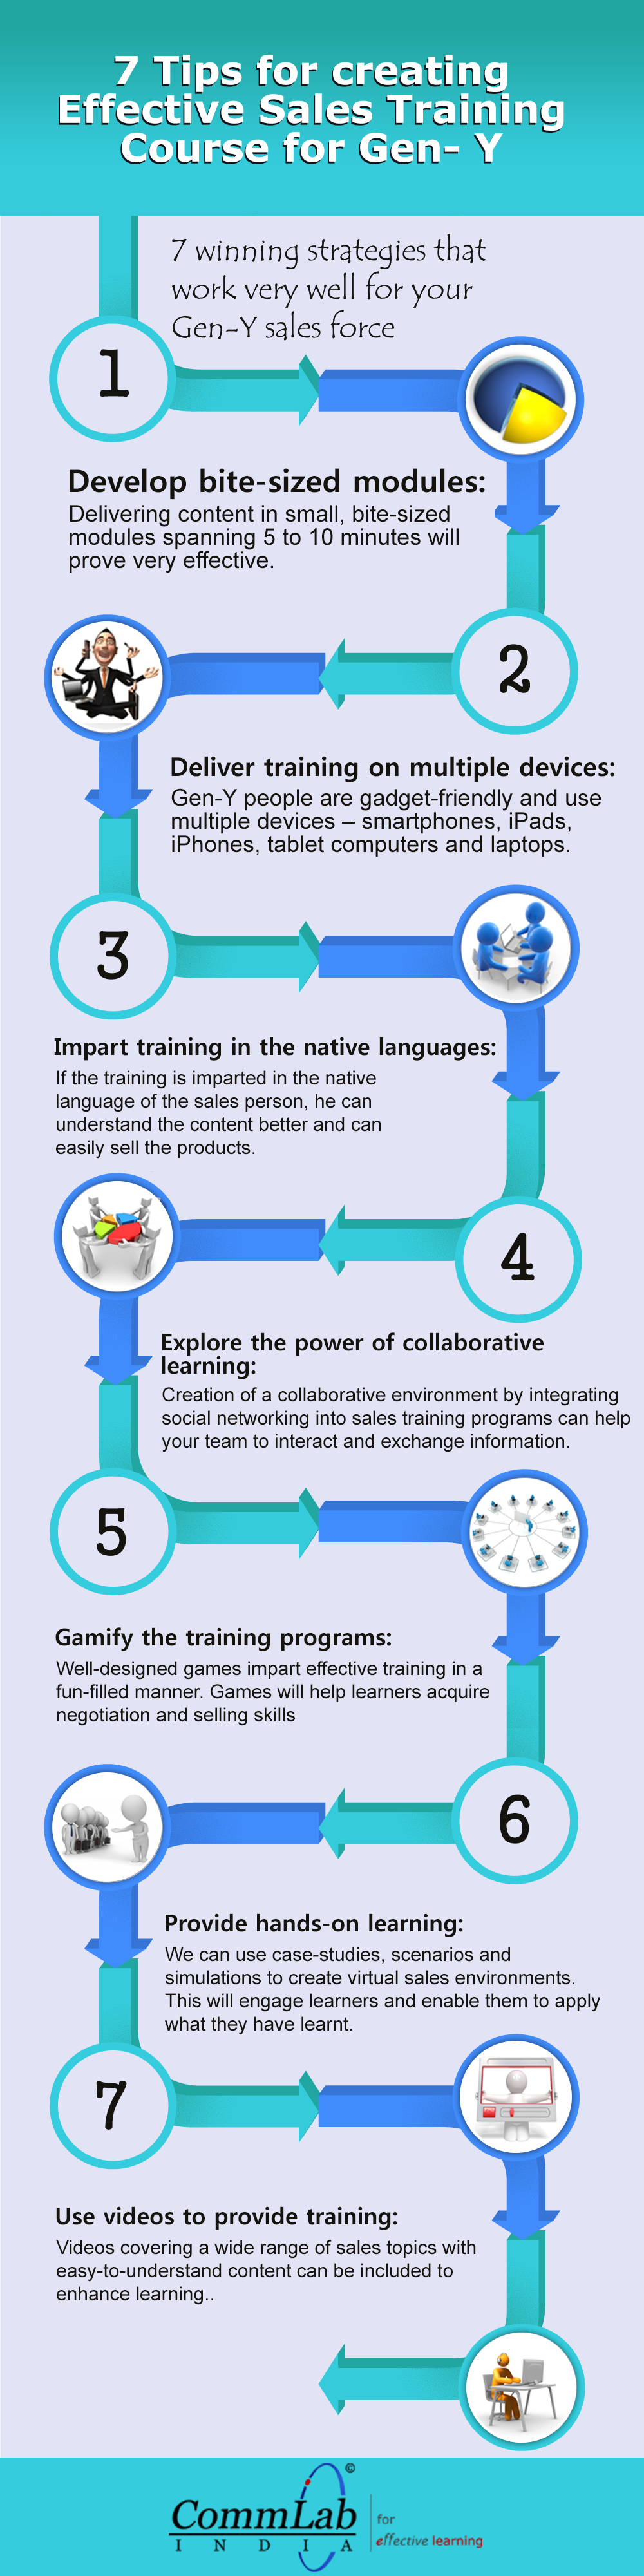 7 Tips To Create Effective Sales Training Courses For Gen Y Workforce - An Infographic